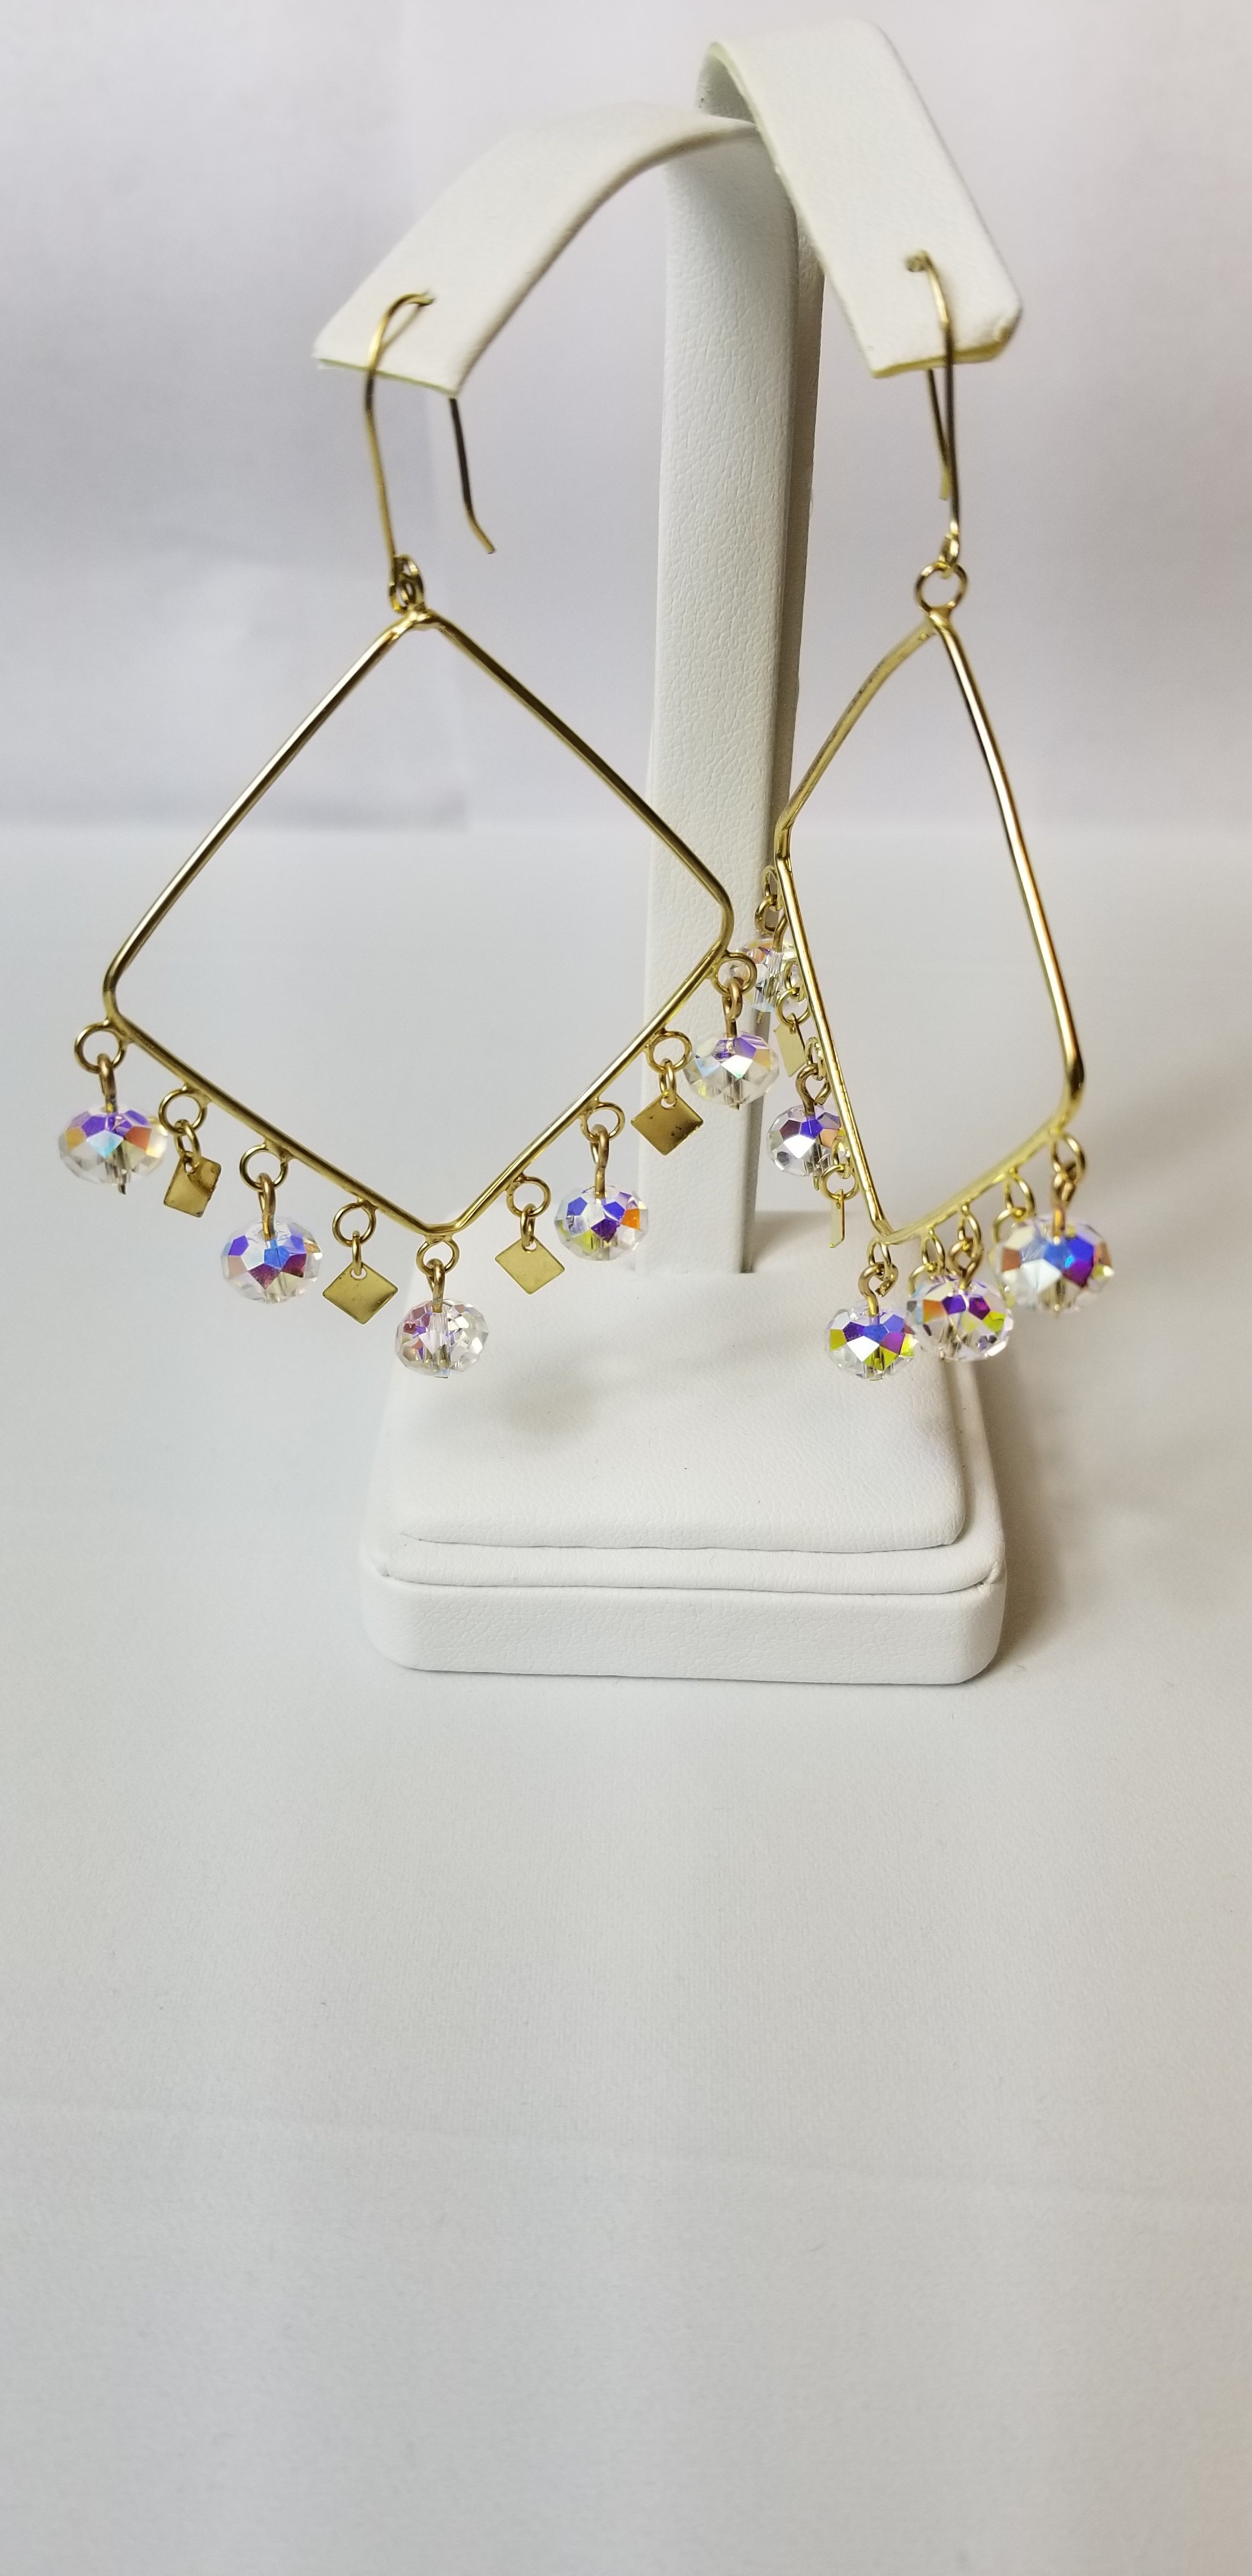 Rectangular Dangle Earrings with Crystal Beads 10K Yellow Gold 9.5g